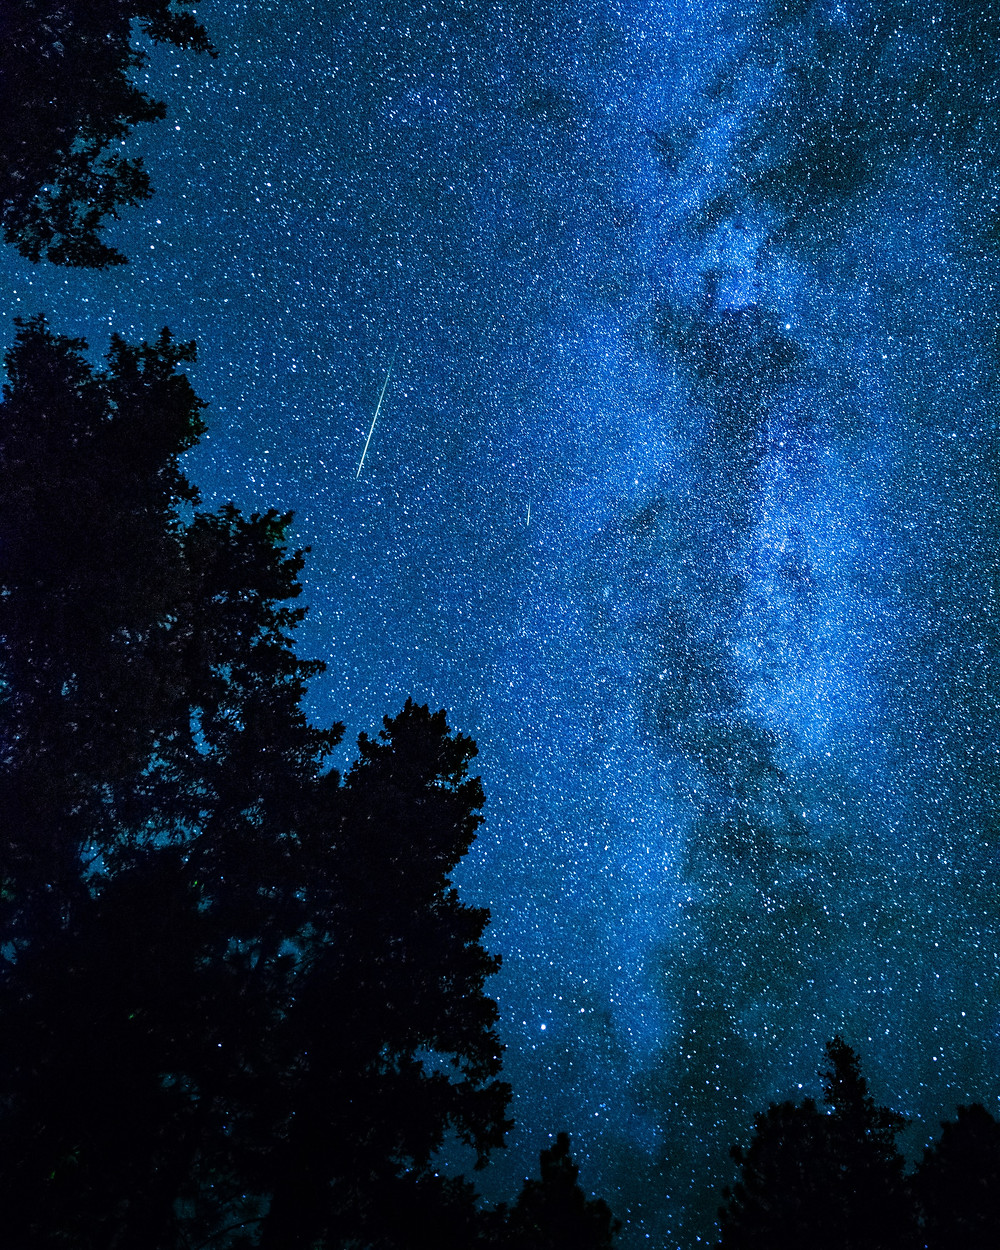 The night sky above the mountains of Washington is a deep blue, all the better for contrast for the meteor streaking overhead